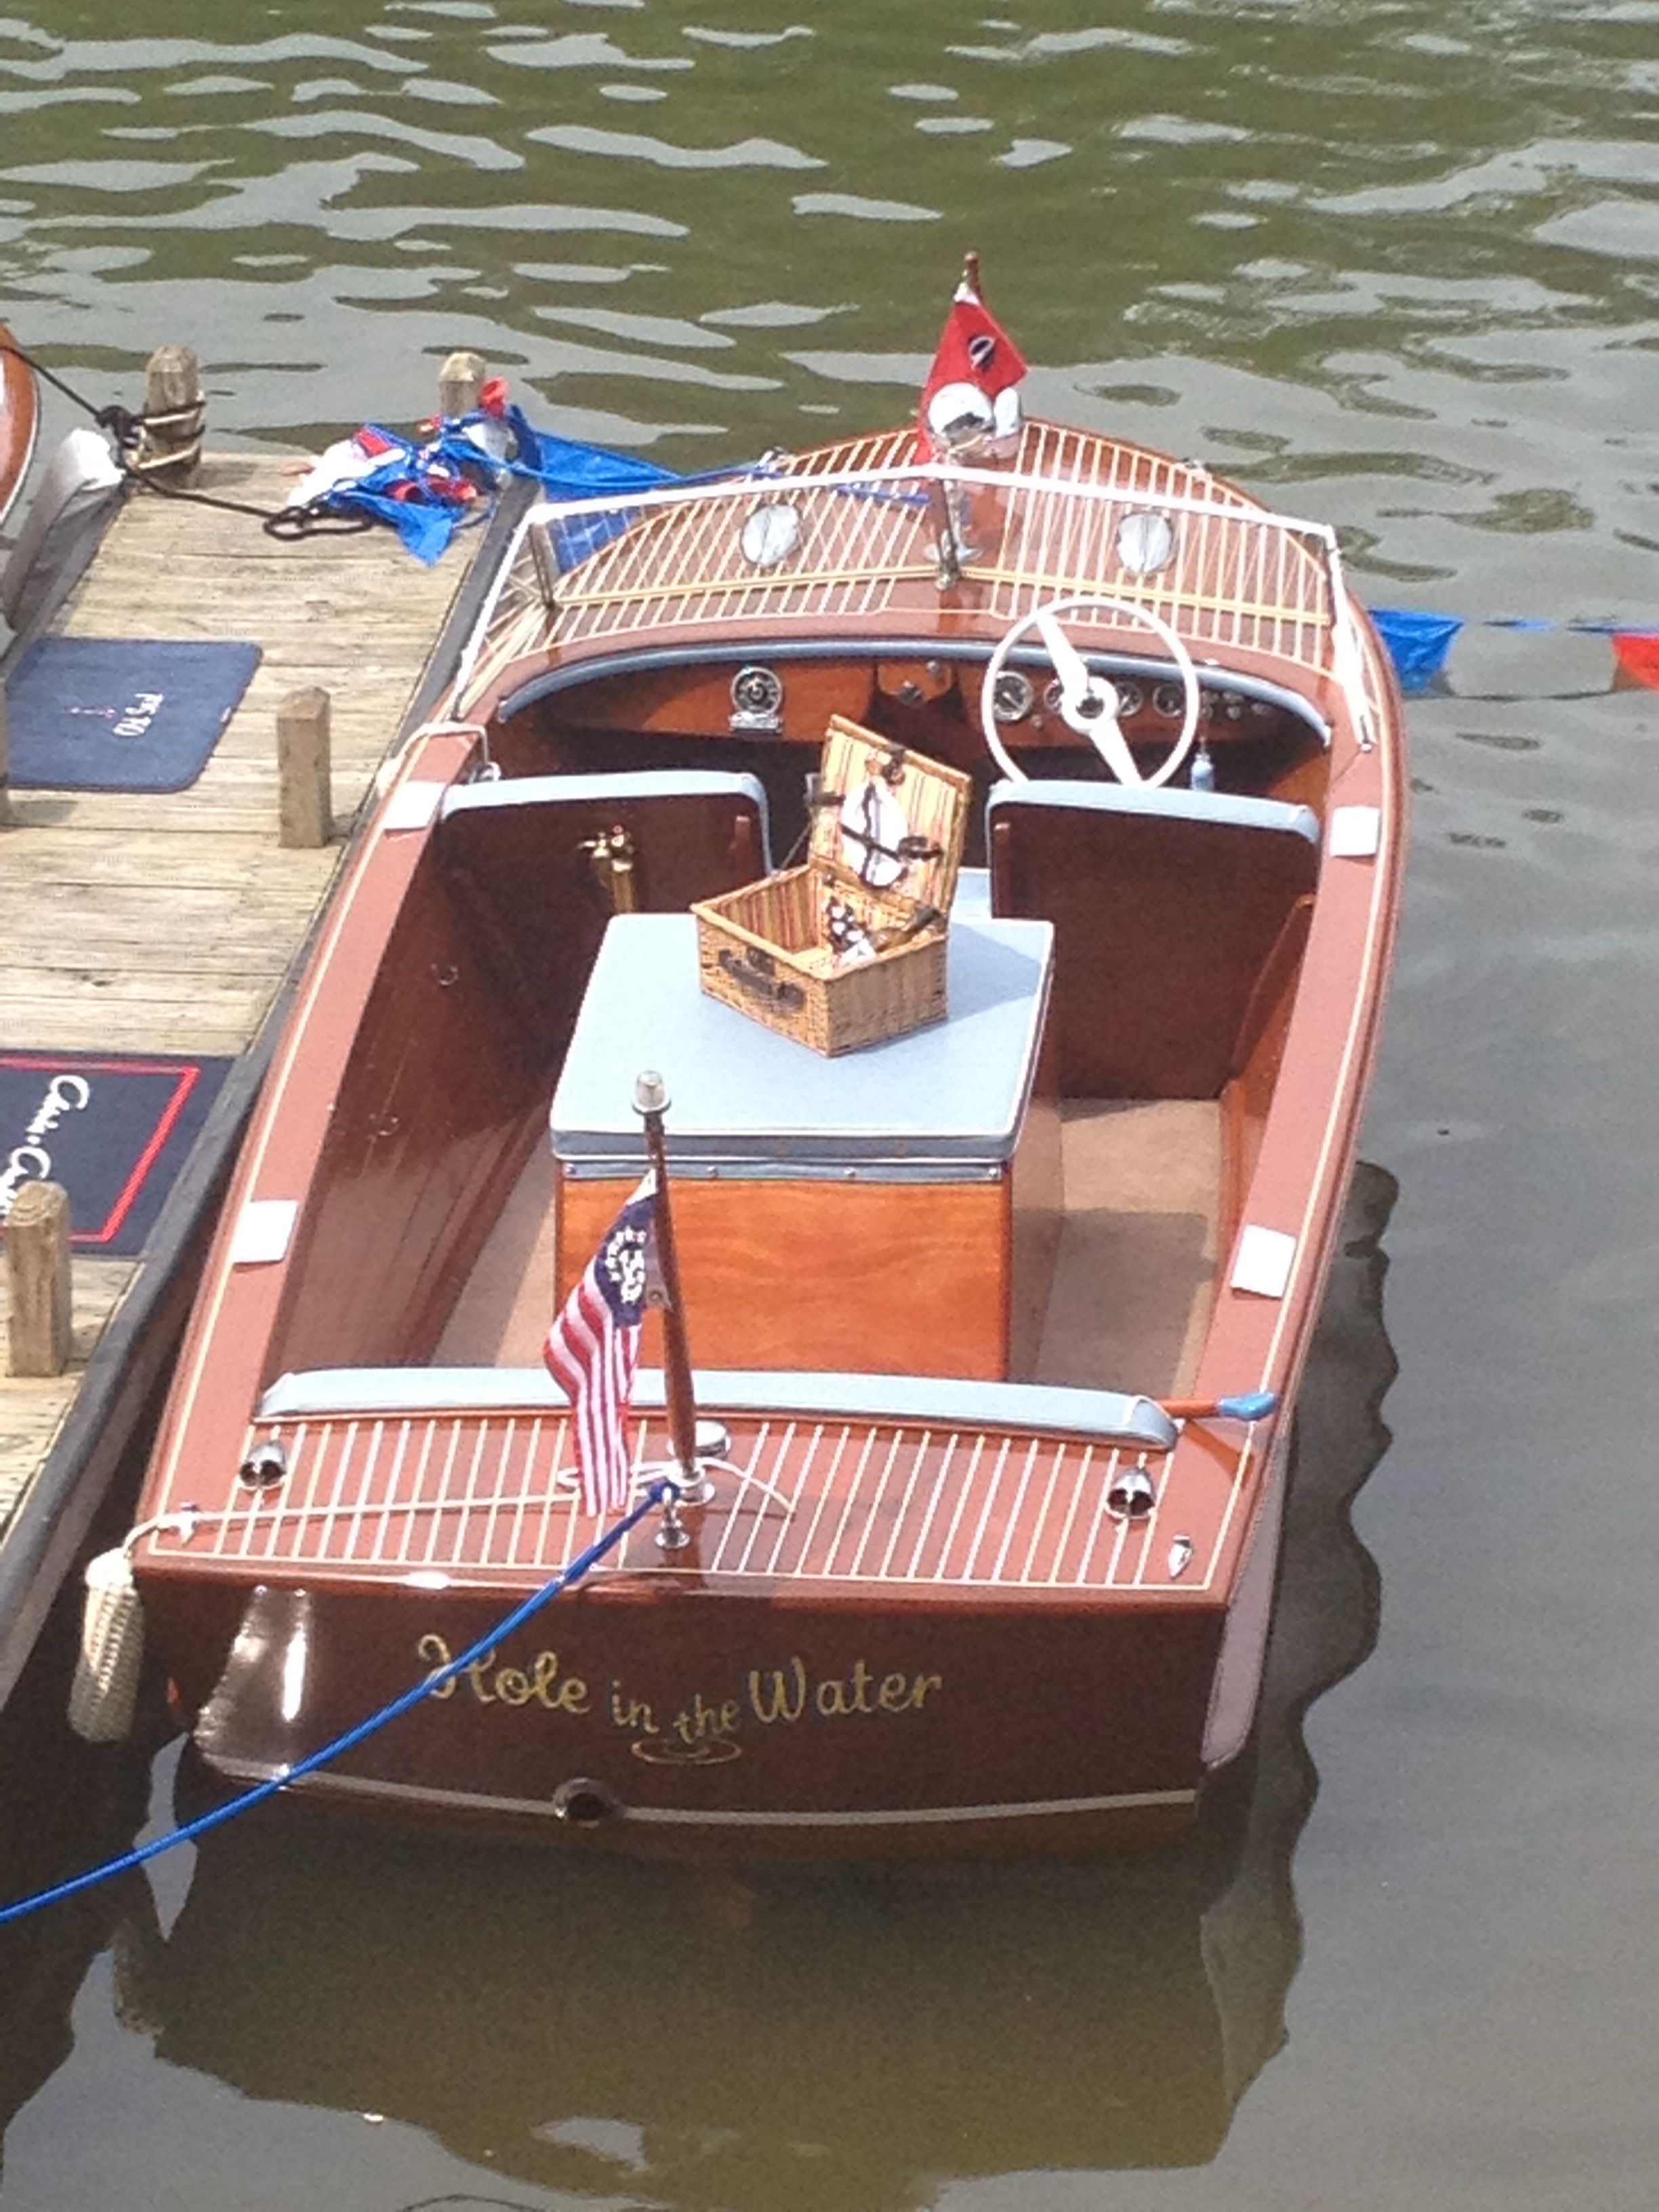 1954 19 Chris Craft Holiday Hole In The Water At The Rdc Triangle